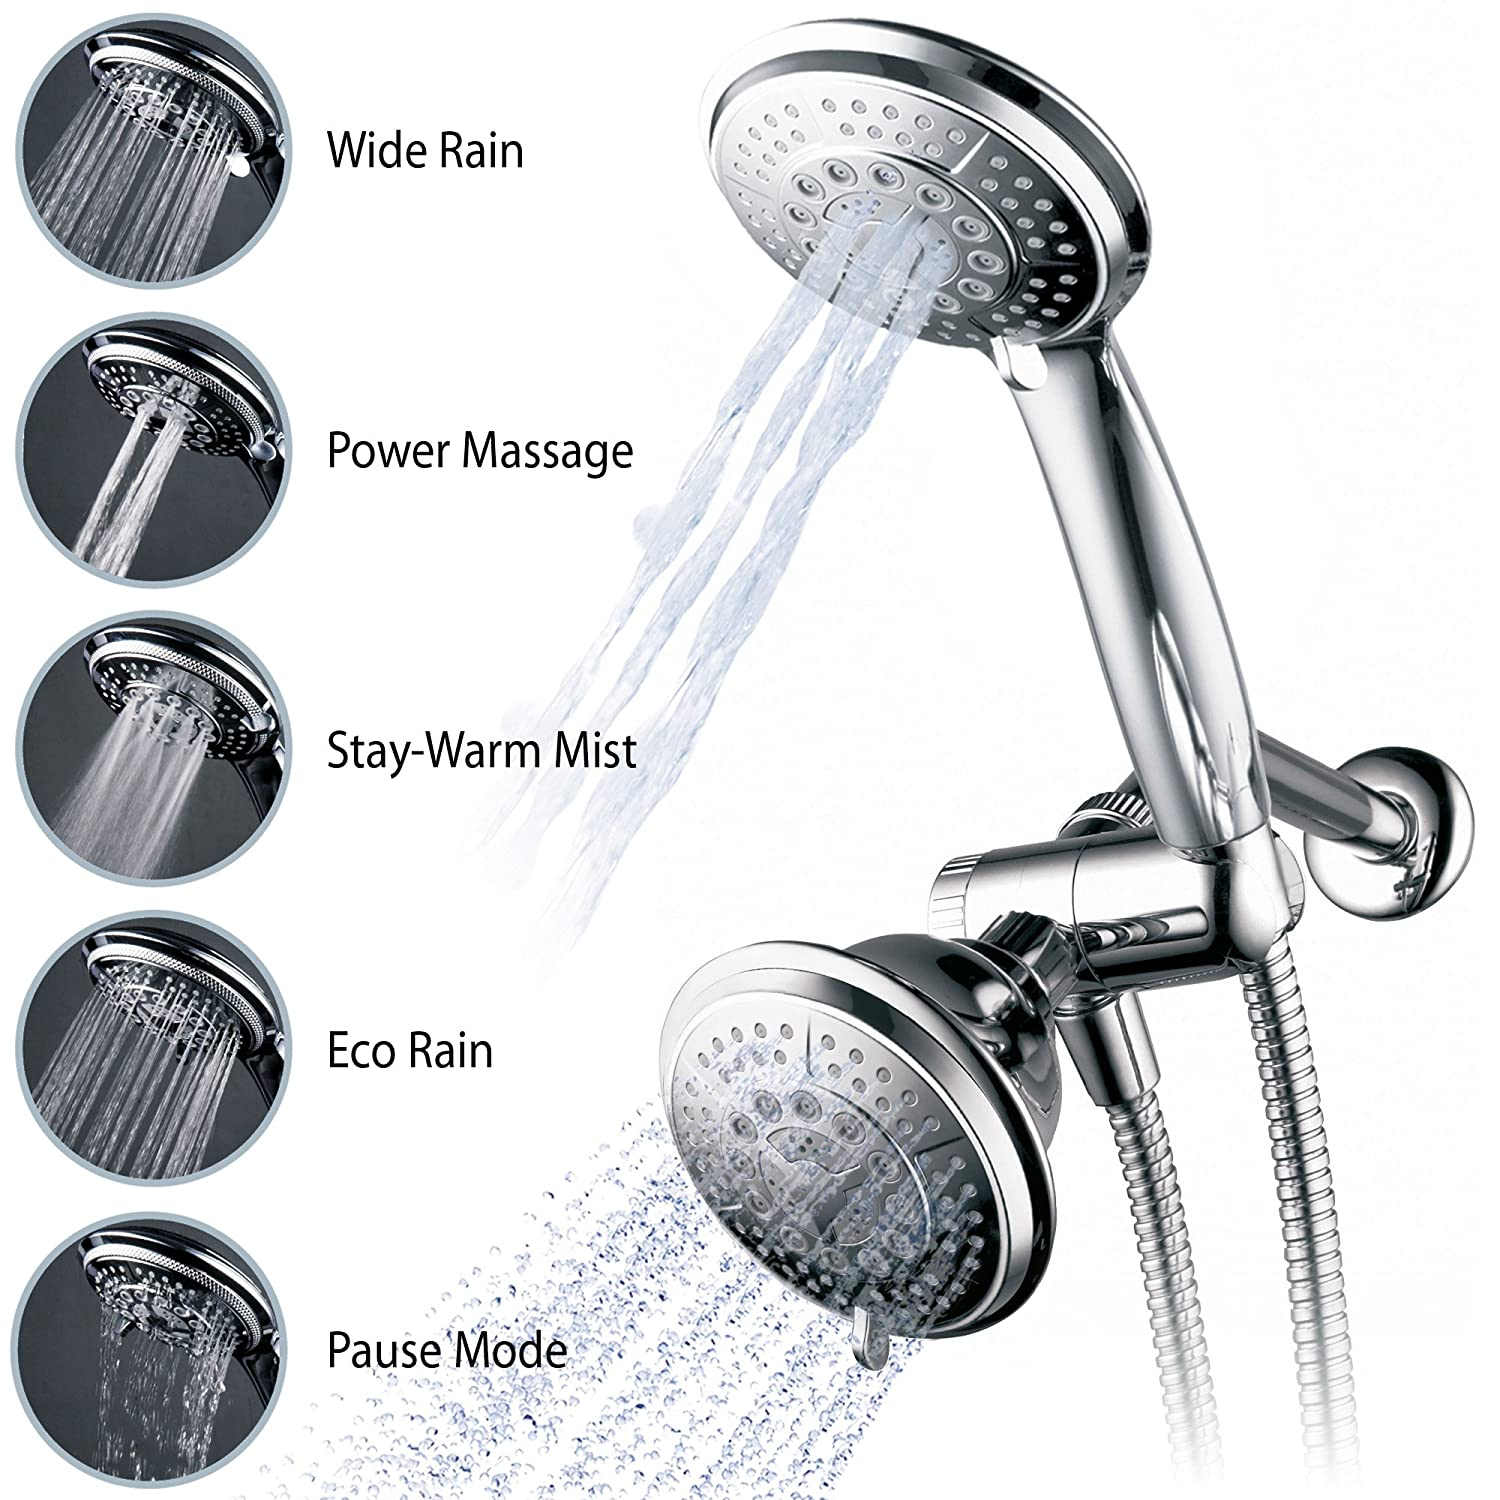 Superieur Amazon.com: Hydroluxe Full Chrome 24 Function Ultra Luxury 3 Way 2 In 1  Shower Head /Handheld Shower Combo: Home Improvement